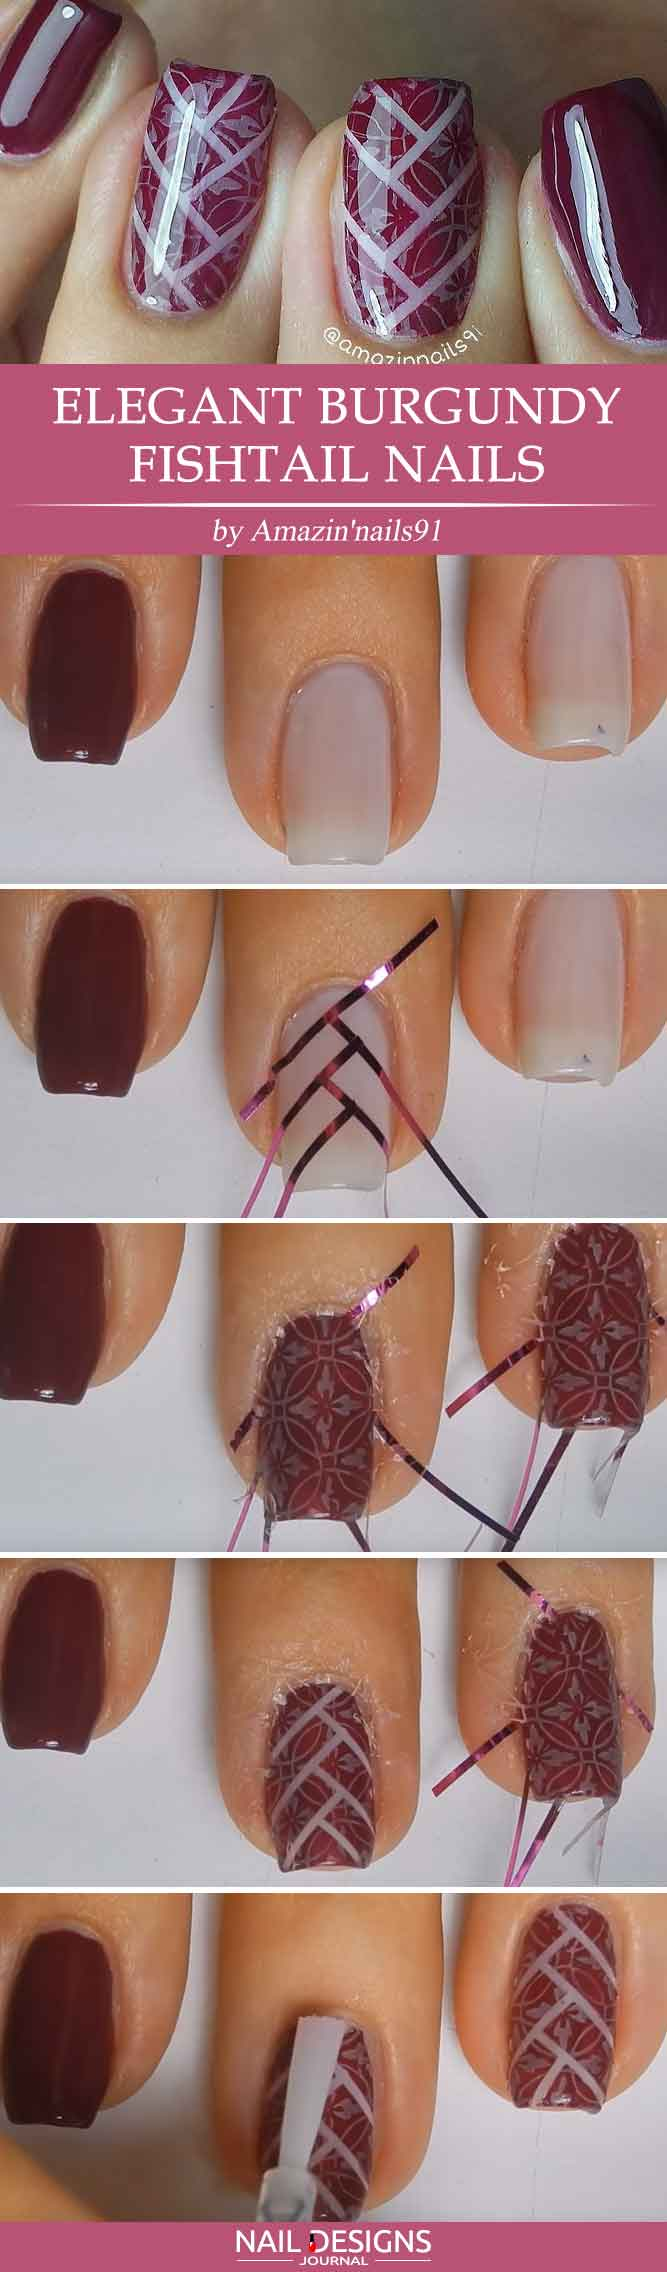 Elegant Burgundy Fishtail Nails